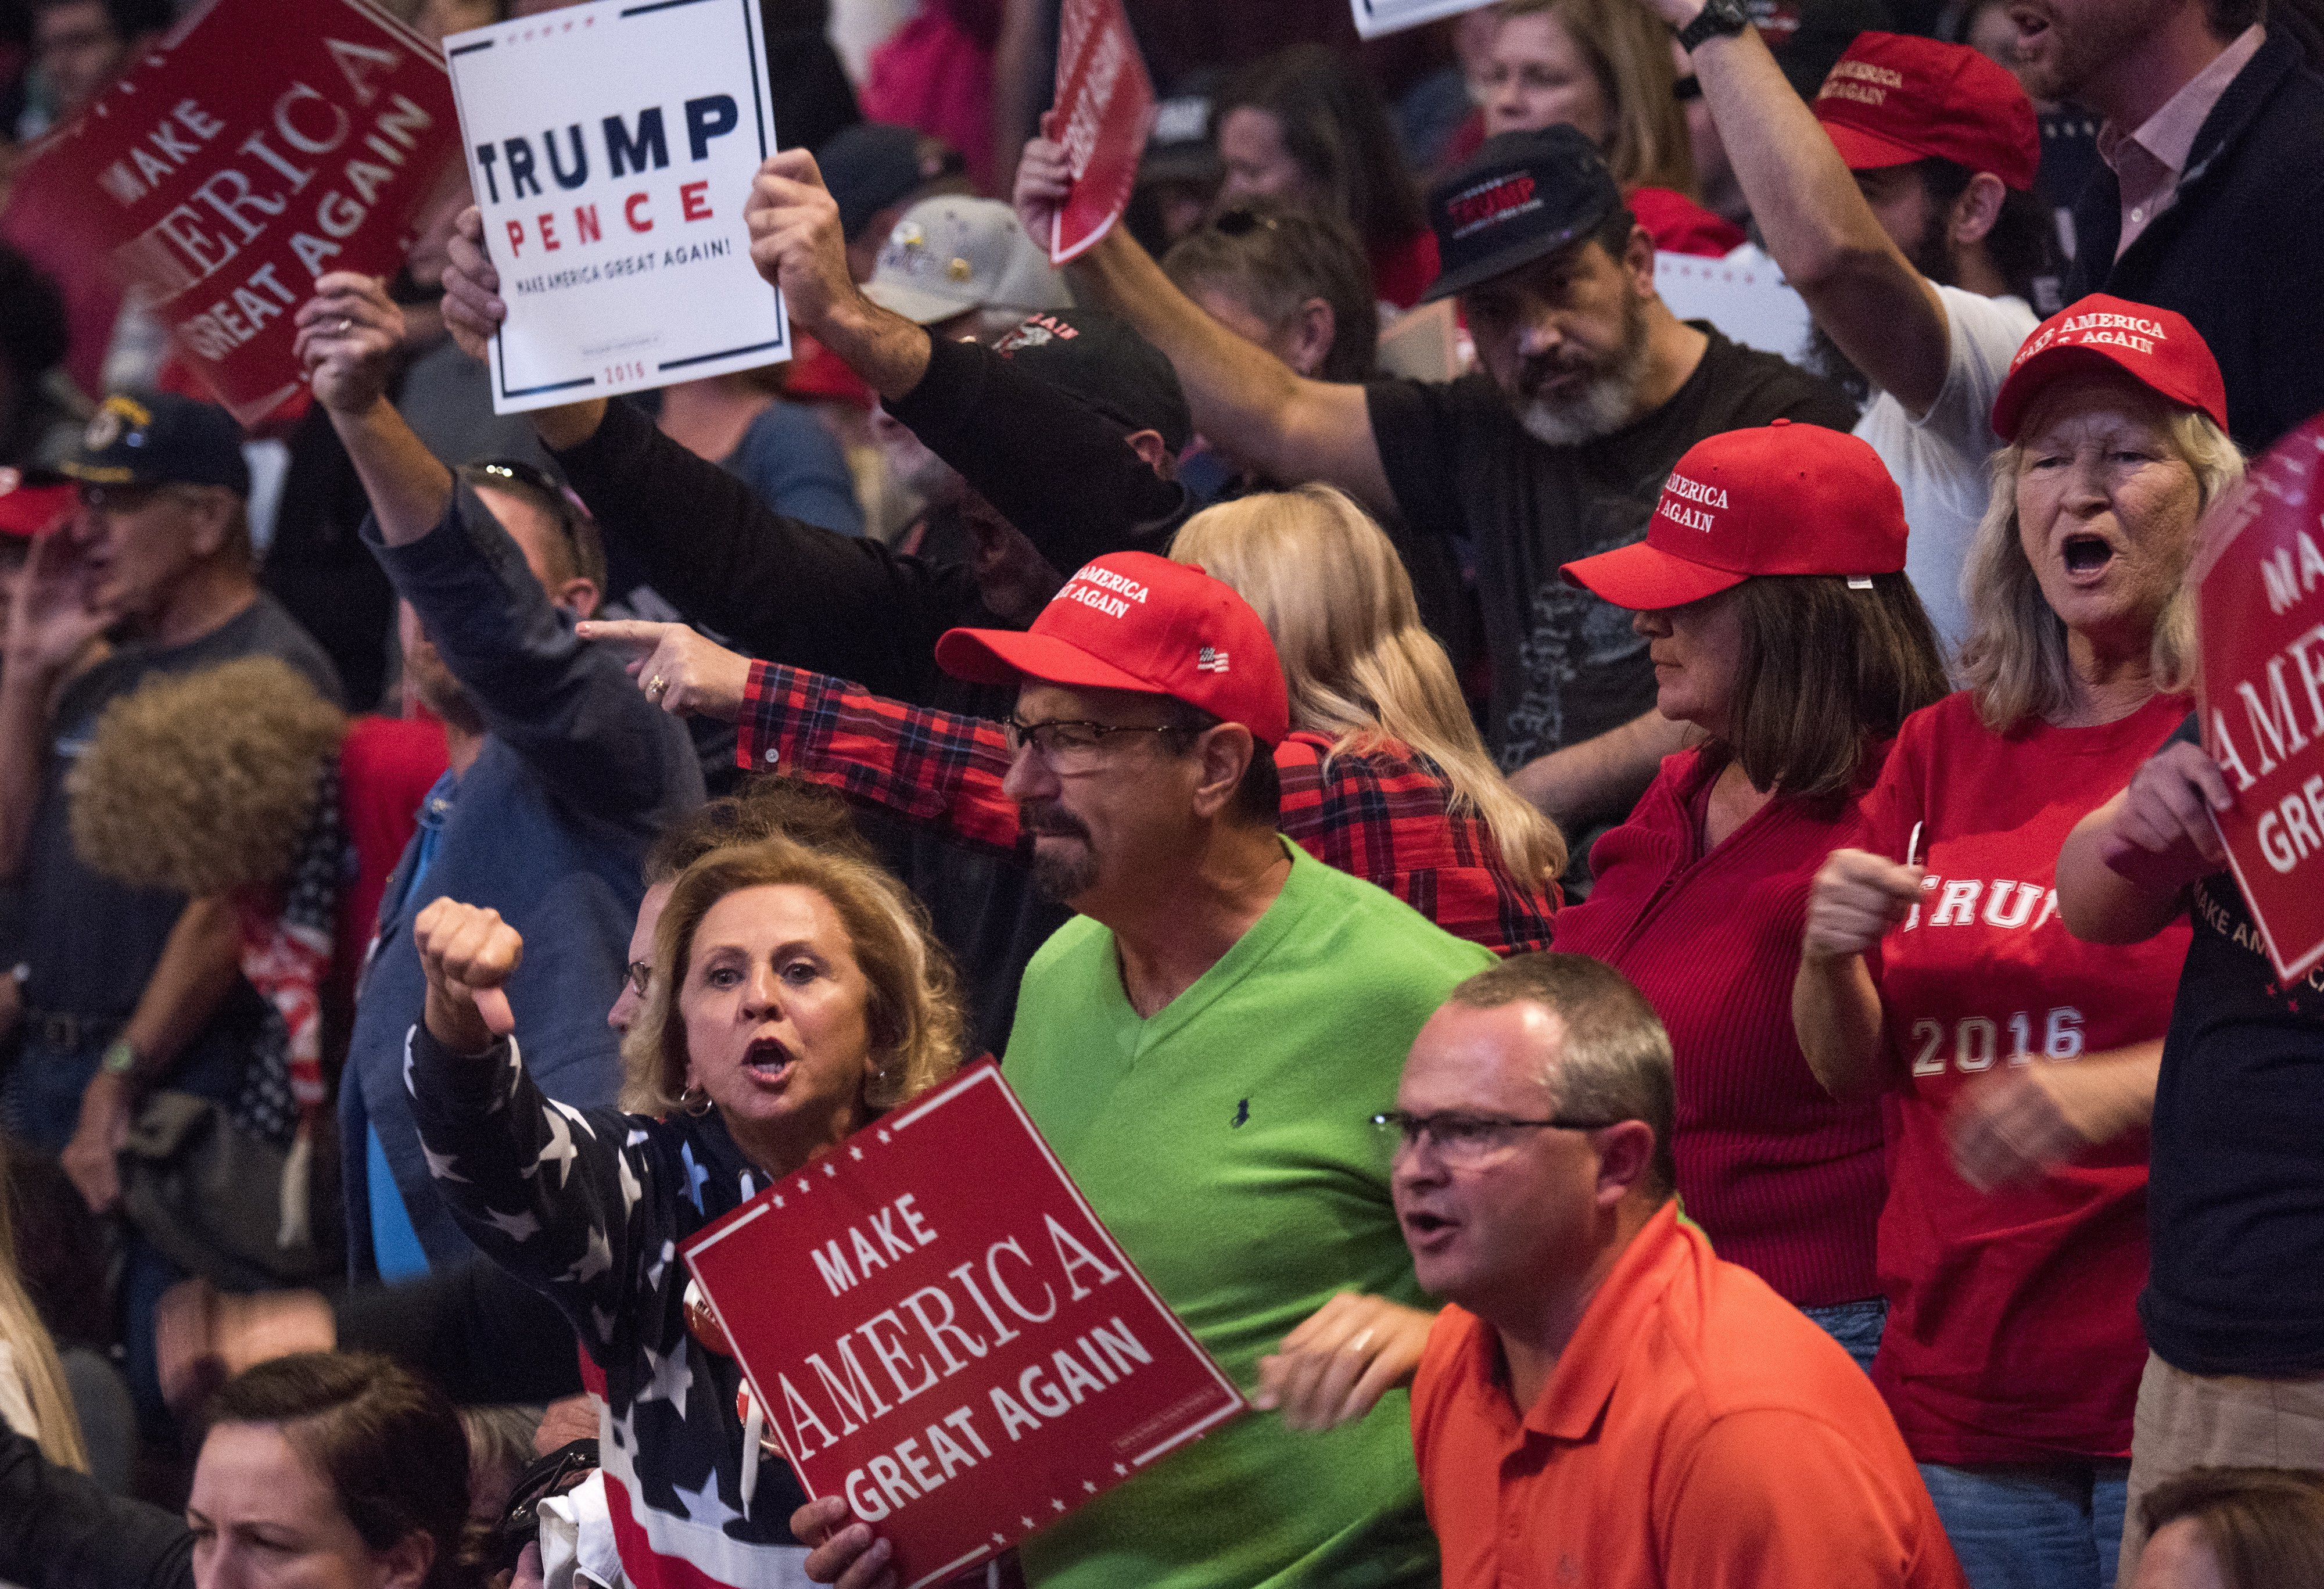 Trump supporters during a campaign held at U.S. Bank Arena in Cincinnati, Ohio | Photo: Getty Images